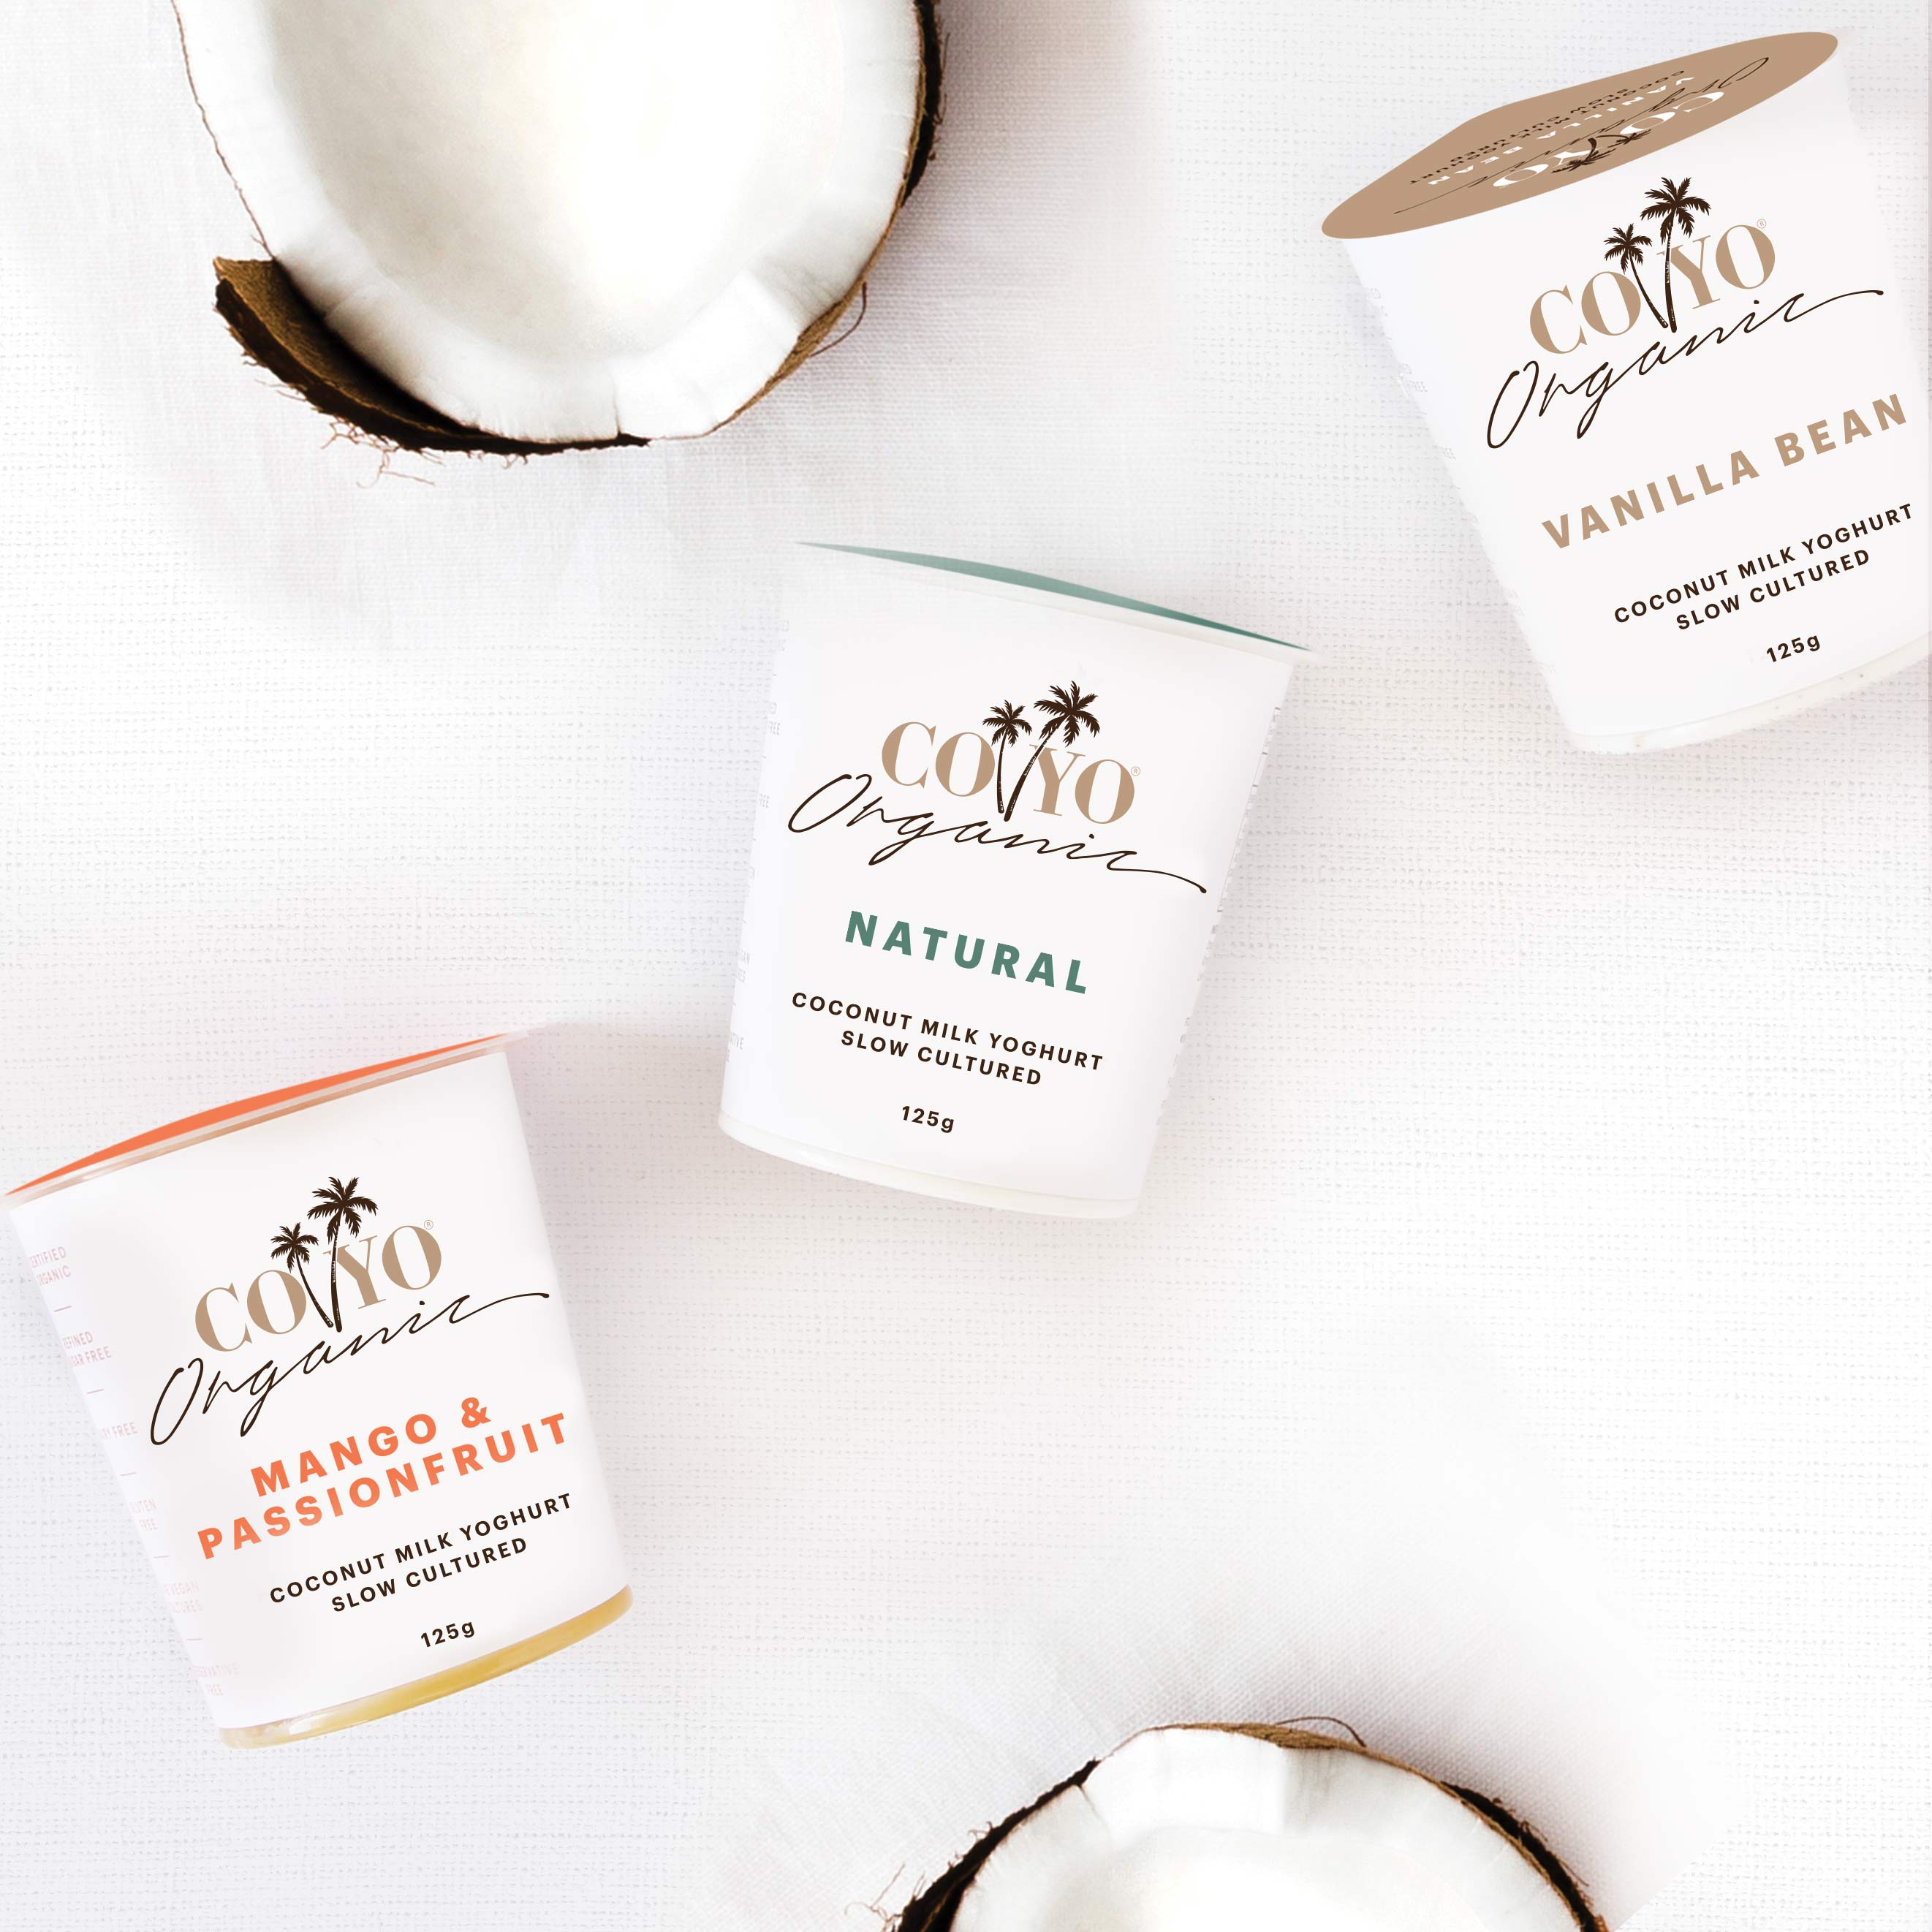 125g-coyo-coconut-yoghurt-minis_6091_3-flavours-on-linen-with-coco-lores_a